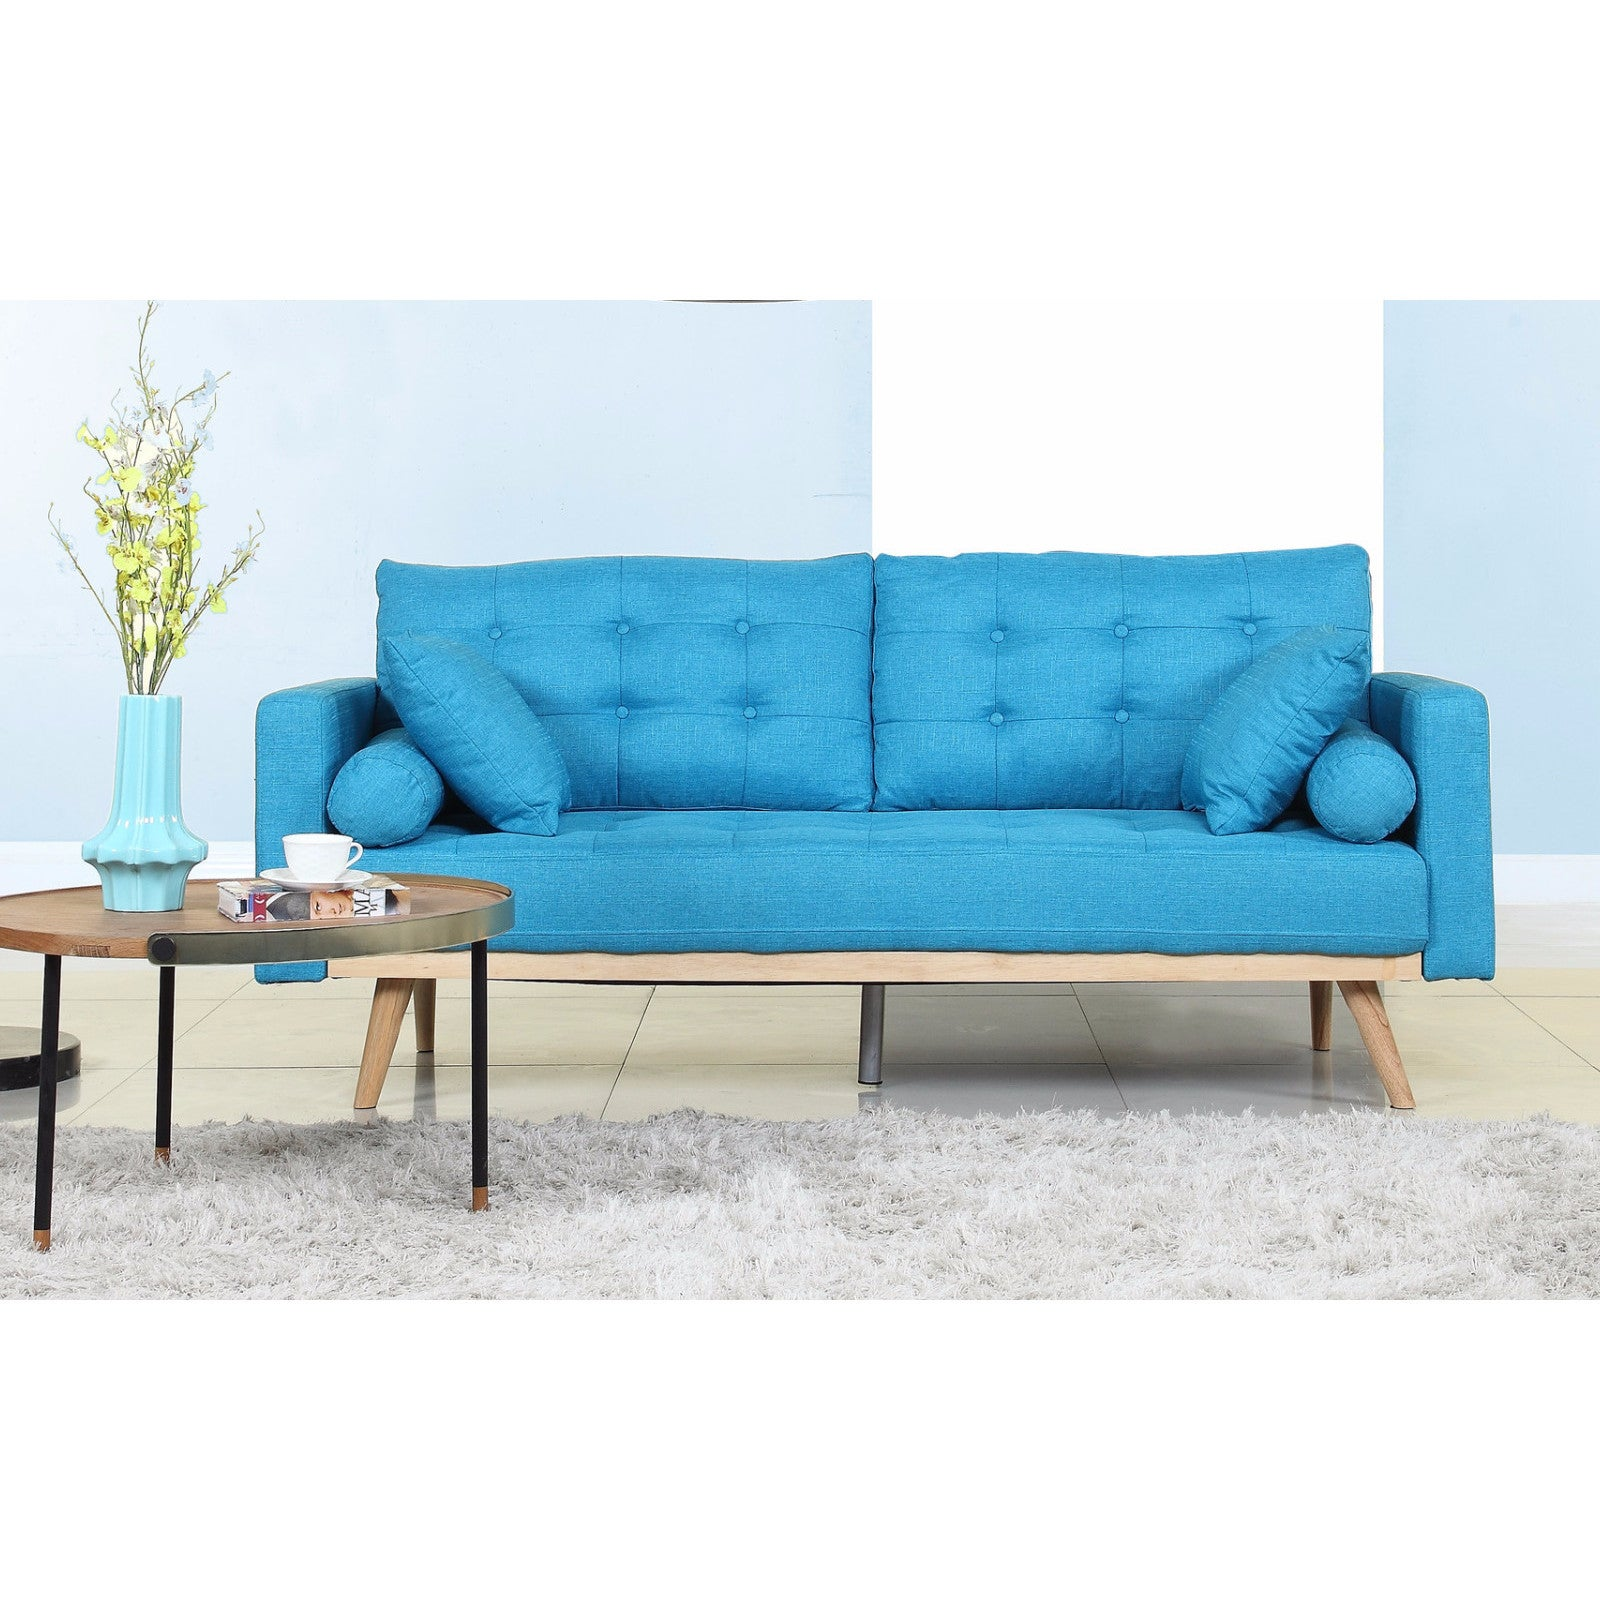 Tufted Linen Mid Century Modern Sofa Free Shipping Today 13189477